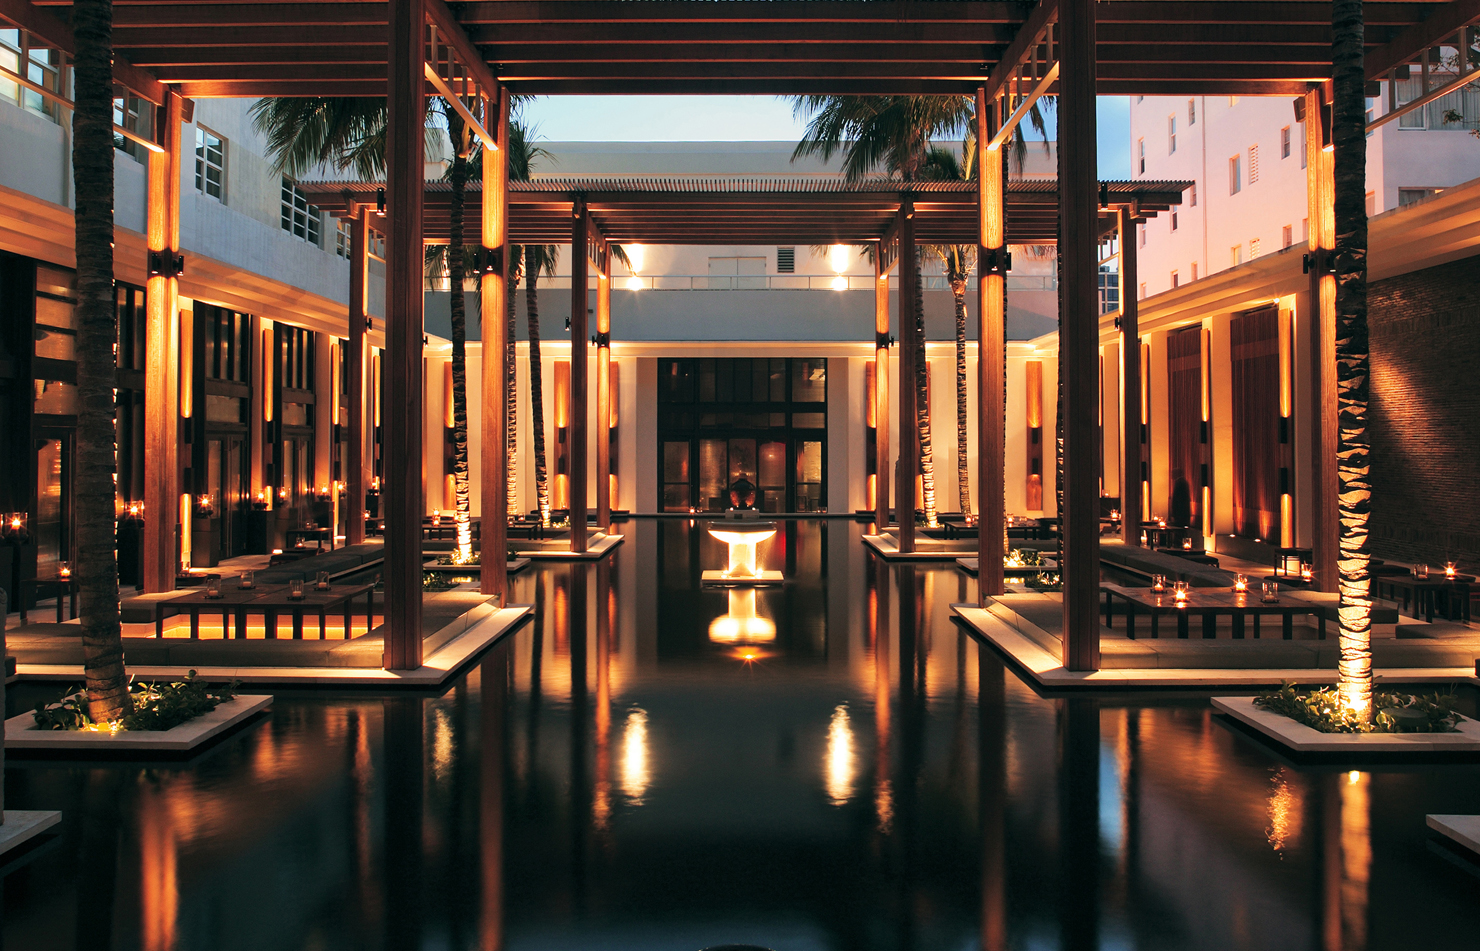 Top Luxury Hotels in America - The Setai - Miami Beach, FL - Hotels Miami Beach - Hotels South Beach - Luxury Hotels in FL Top Luxury Hotels in America Top Luxury Hotels in America for the Perfect End of Summer Getaway The Setai Resort and Residences Miami Beach FL